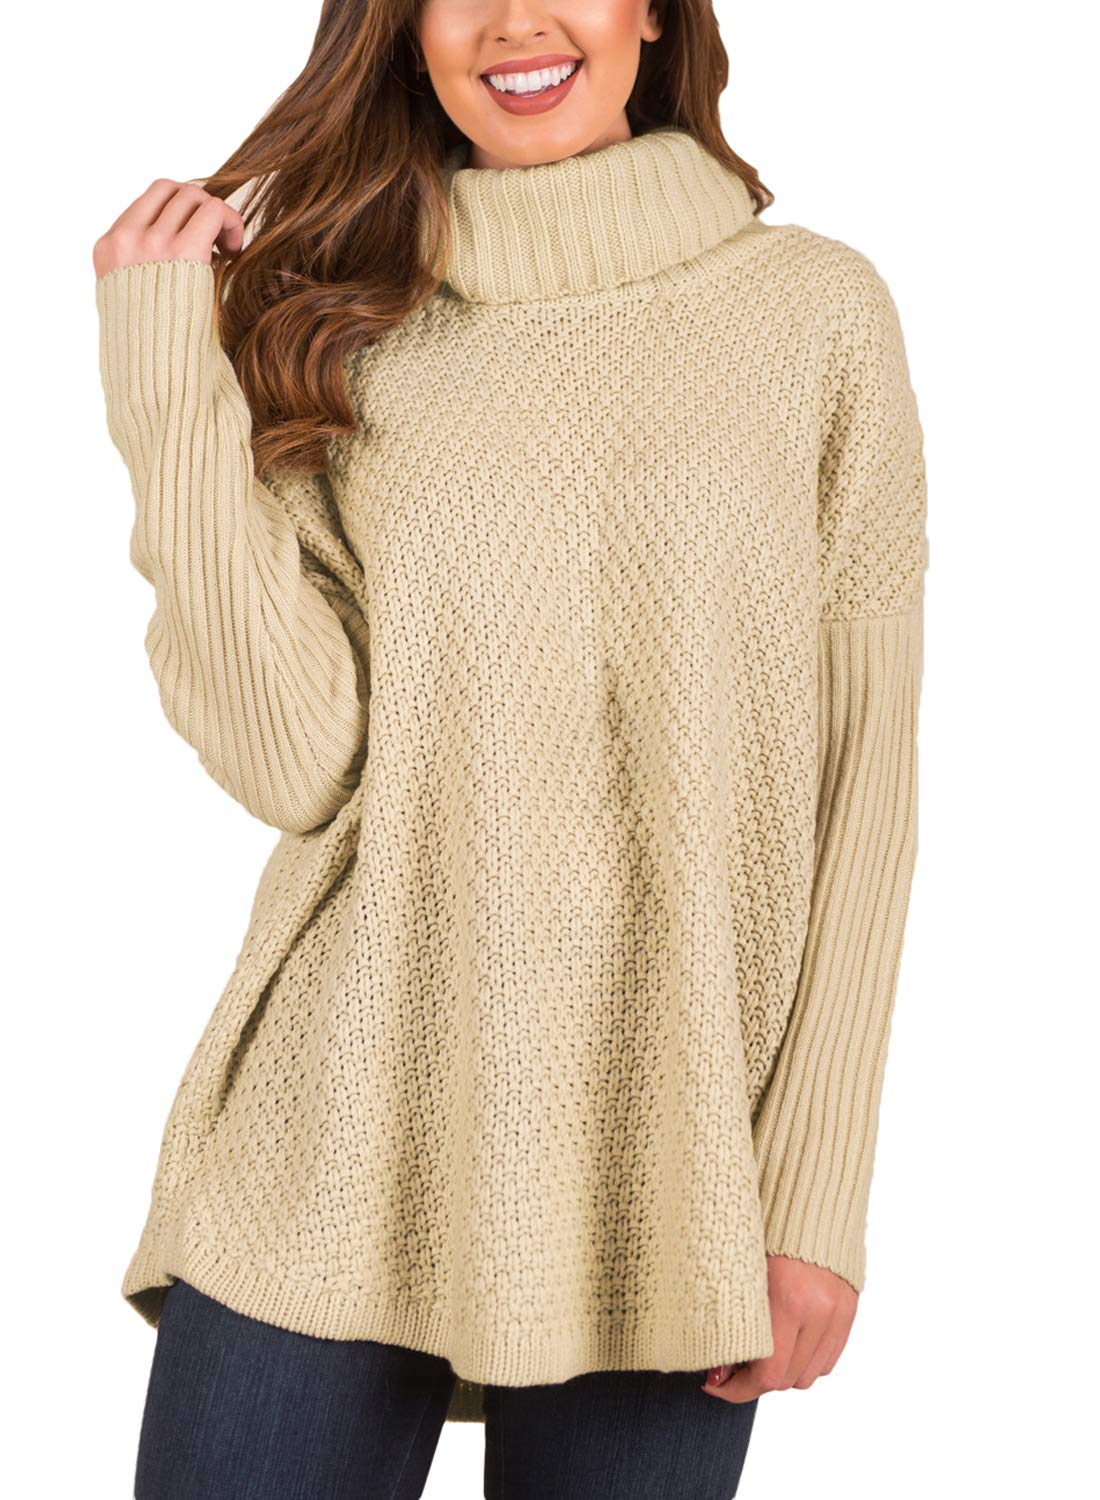 ACKKIA Women's Casual Turtleneck Batwing Long Sleeve Rib Knit Pullover Sweater Champagne Size M